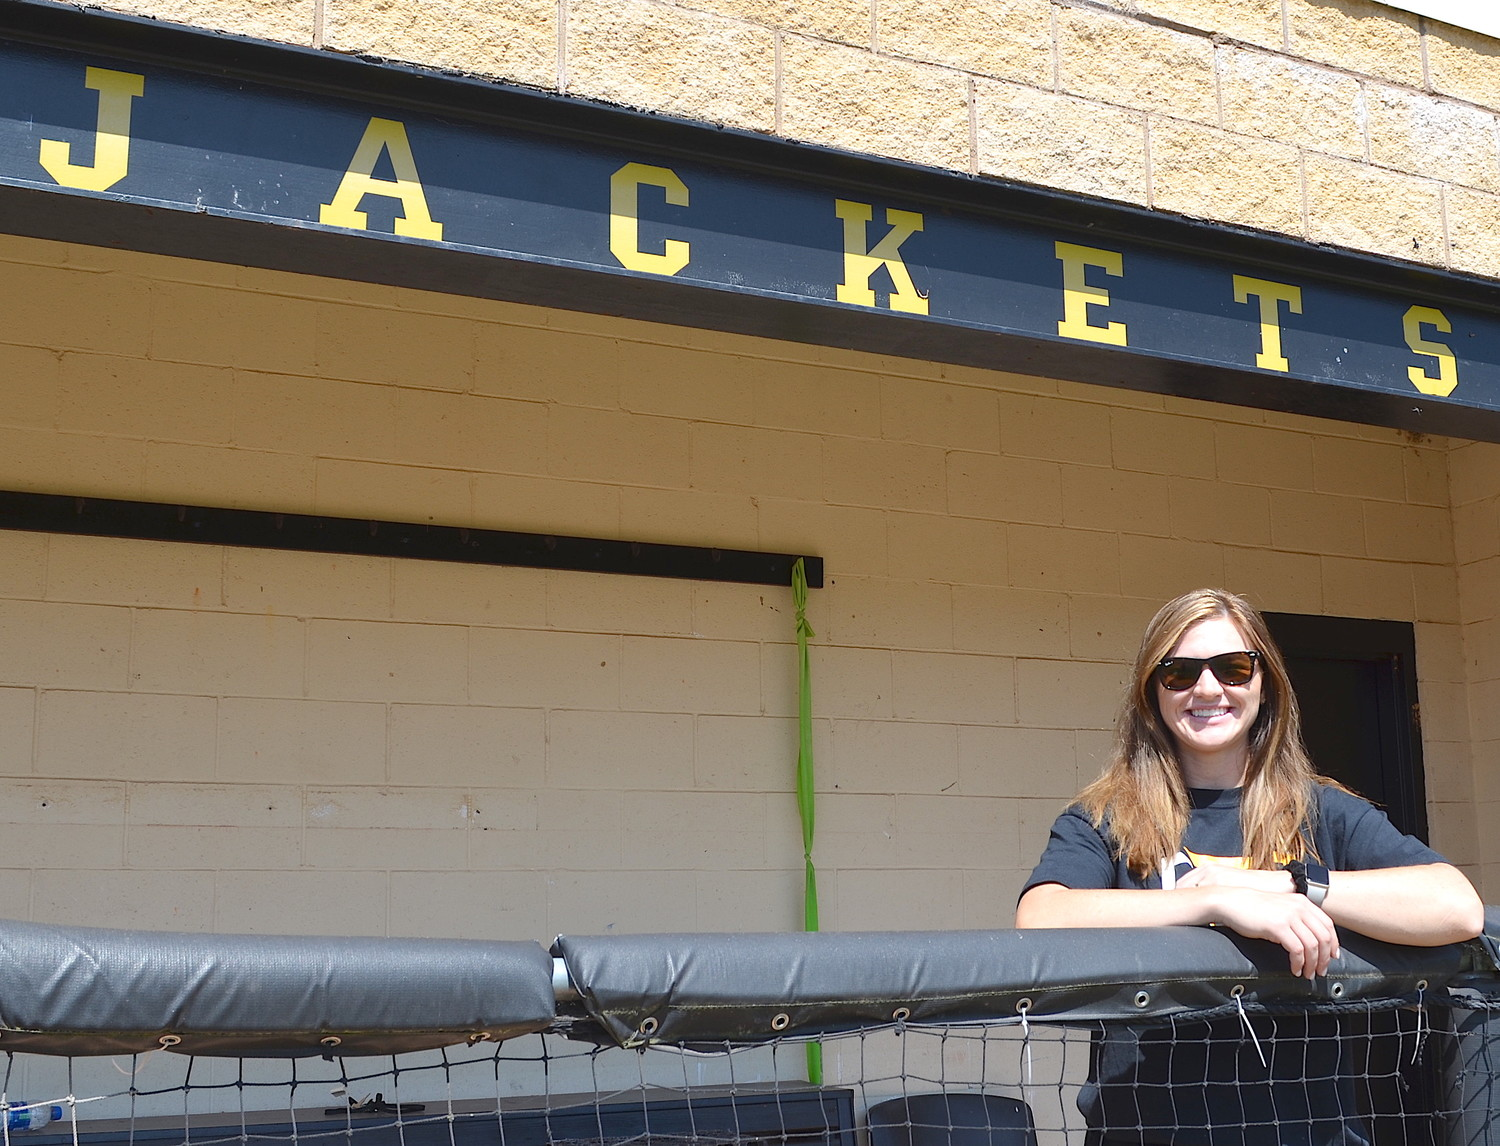 Preslie Norris is the new head softball coach at Corner High School. Norris is a 2011 Corner High School graduate and a former All-State softball player for the Yellow Jackets.